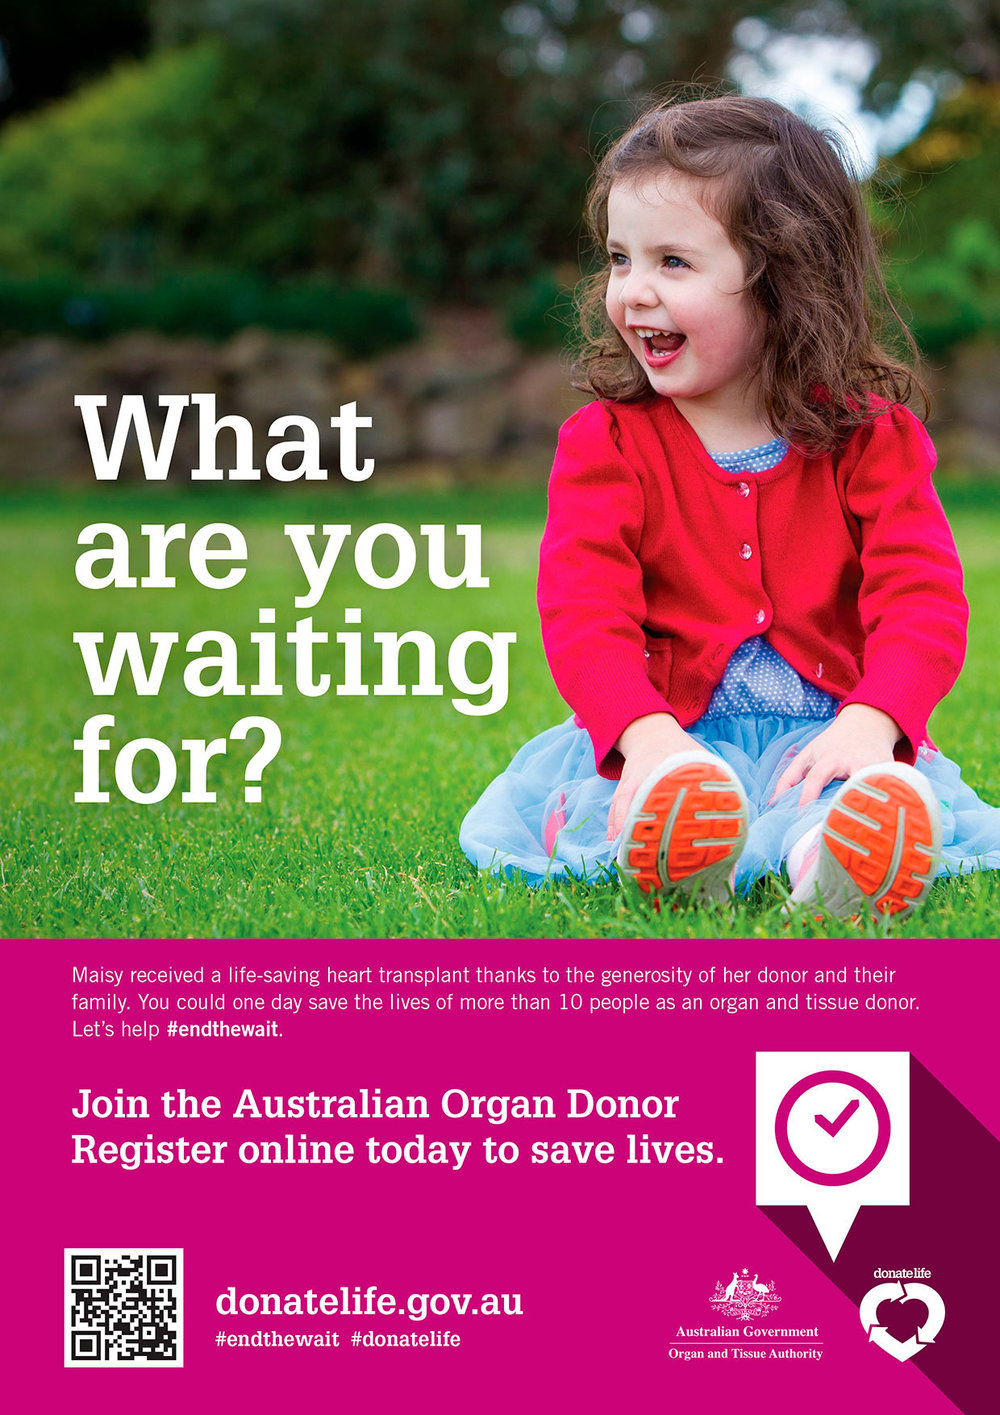 Organ & Tissue Authority - Australian Government